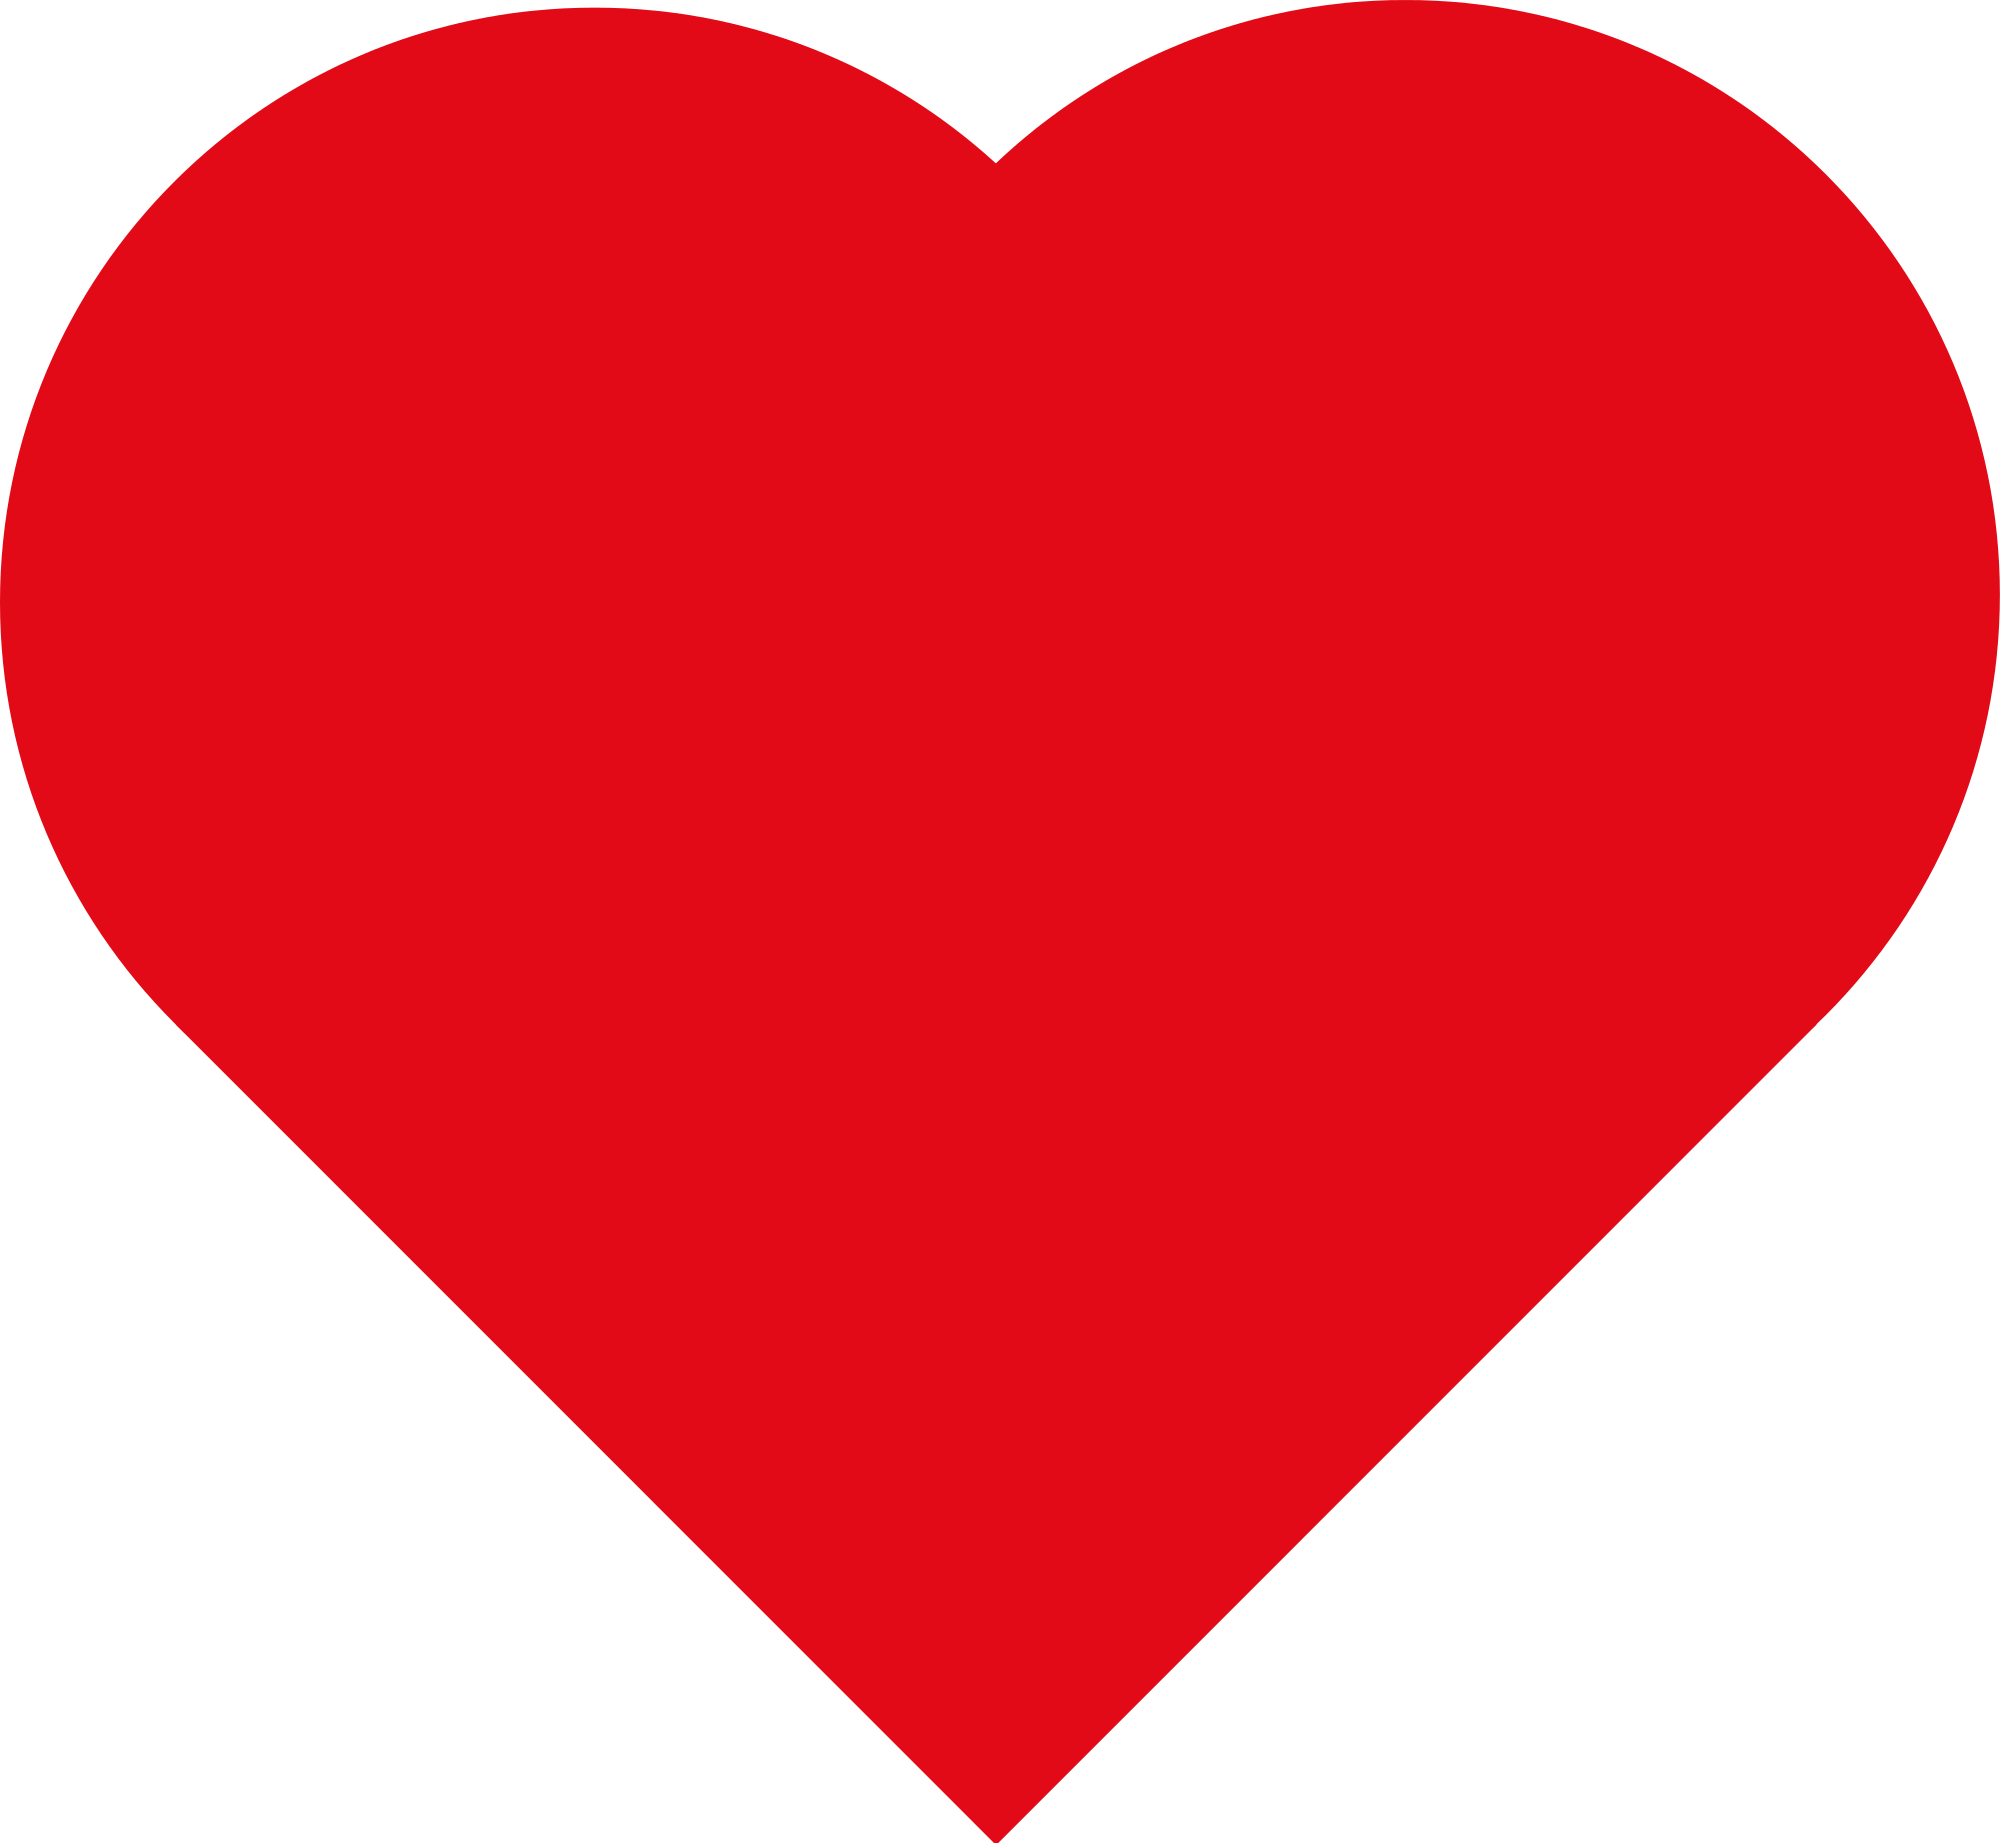 Red heart icon png. Love transparent image mart